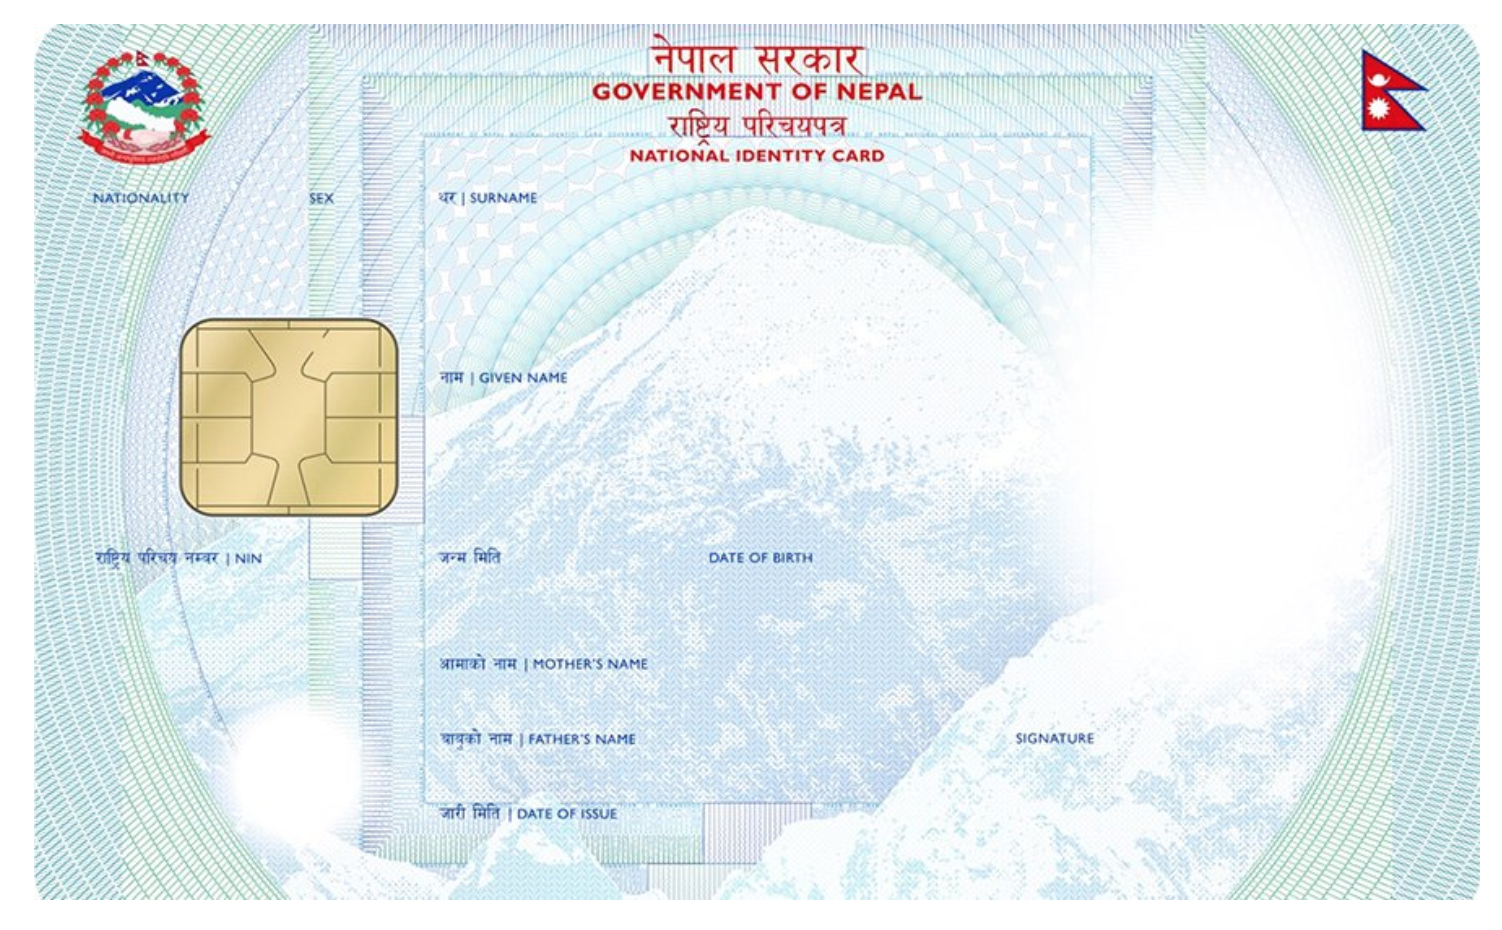 National Identity Card (Nepal).